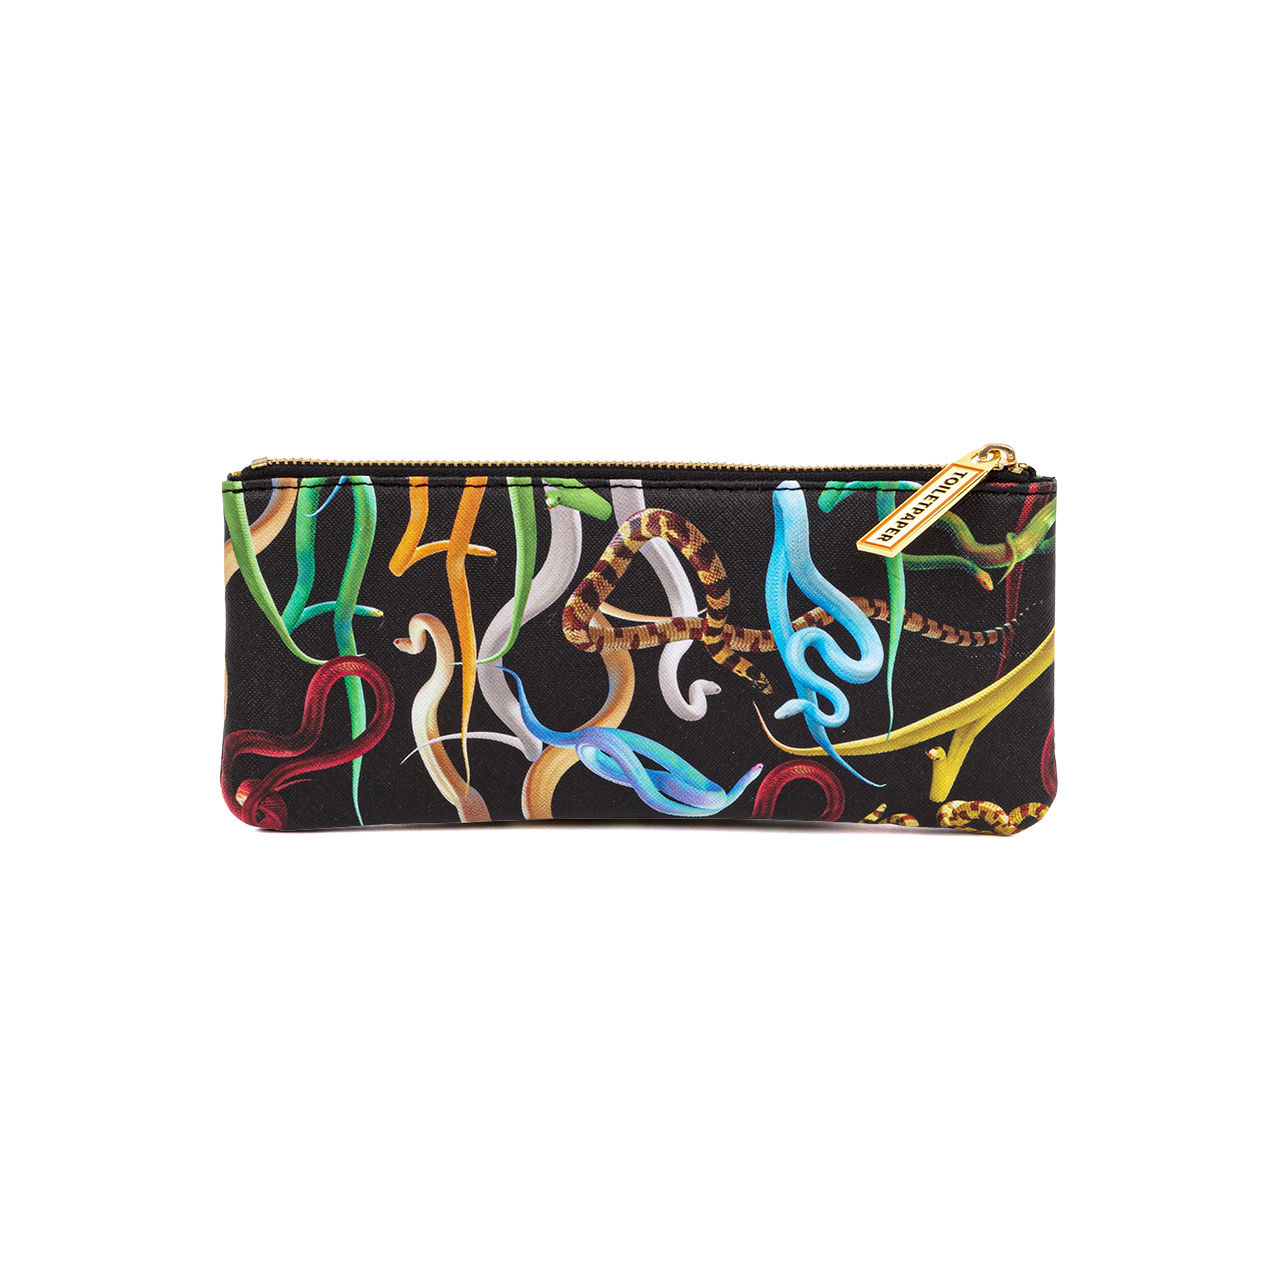 Accessories - Bags, Purses & Luggage - Toiletpaper Case - / Snakes - Fabric by Seletti - Snakes - Polyester, Polyurethane